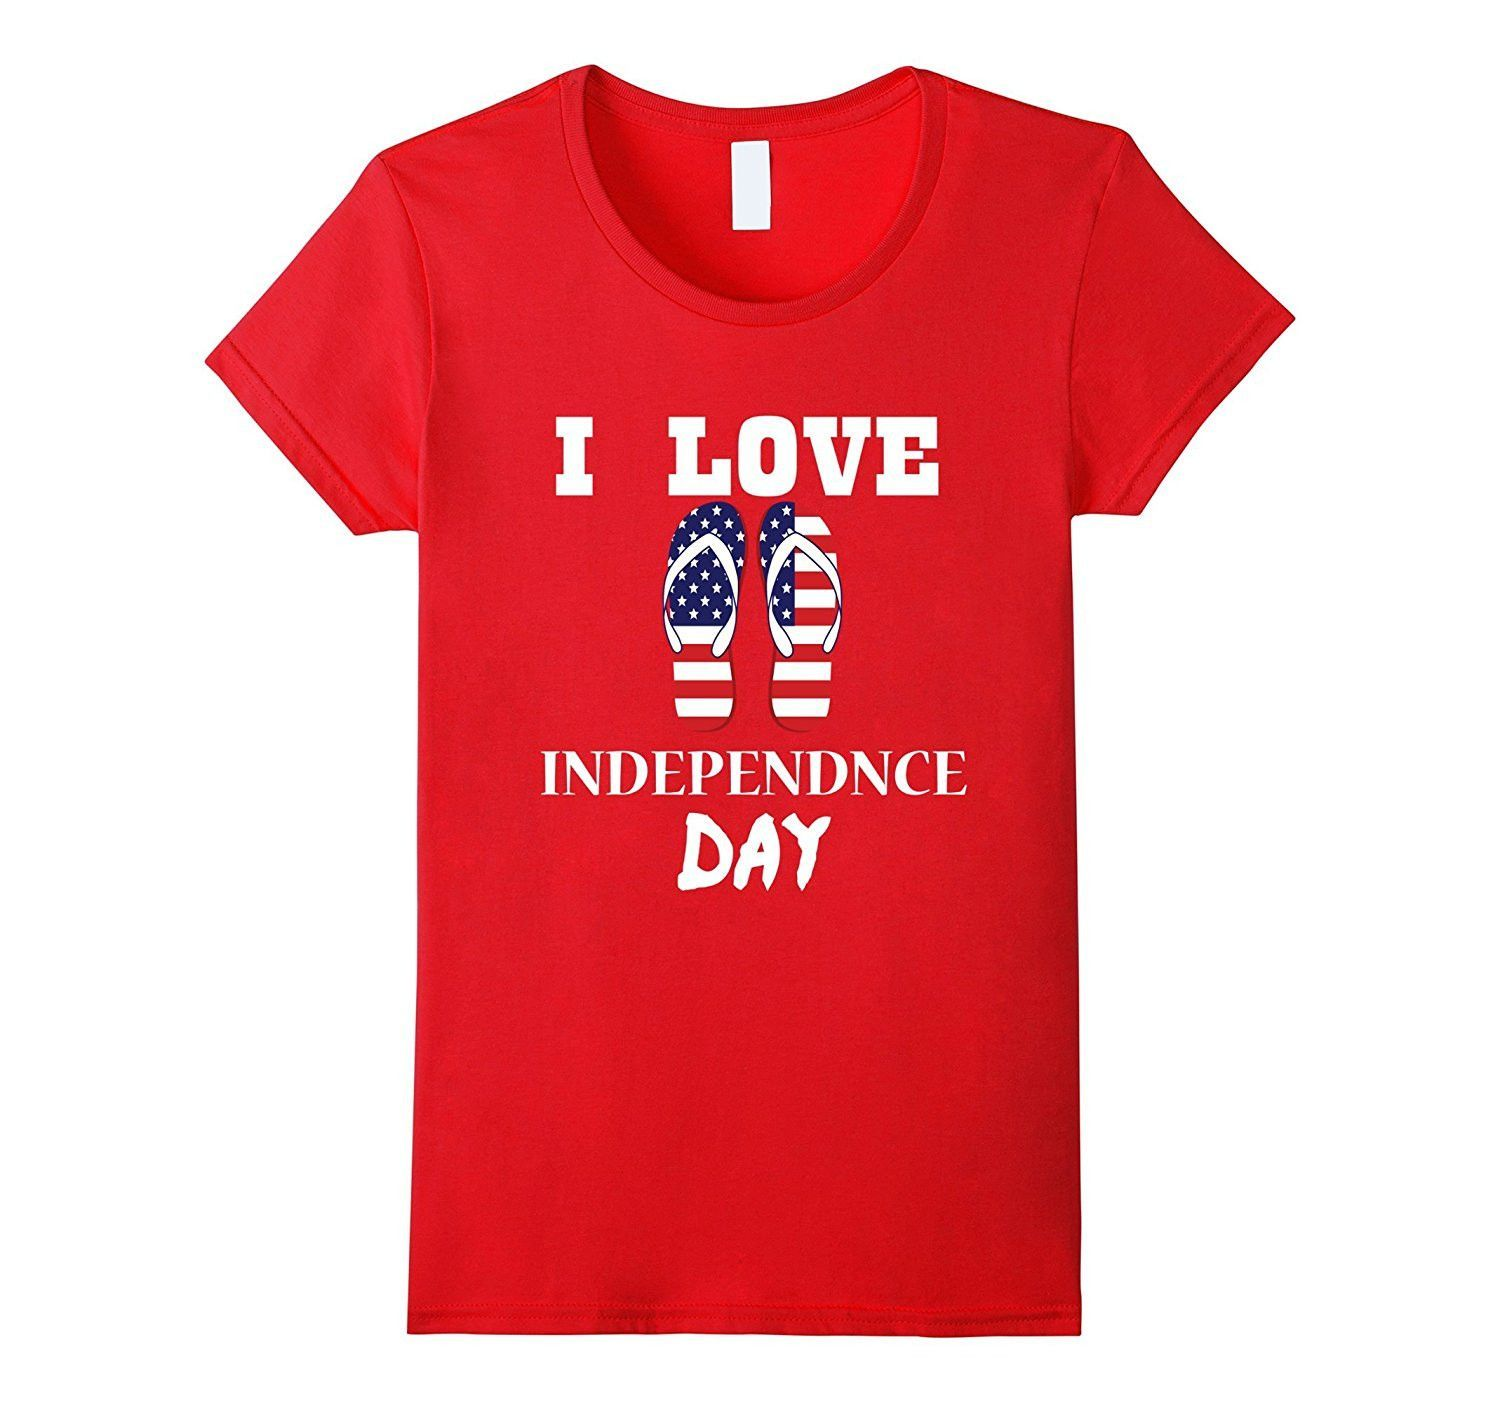 7237ce257 I LOVE THIS INDEPENDNCE DAY T-shirt